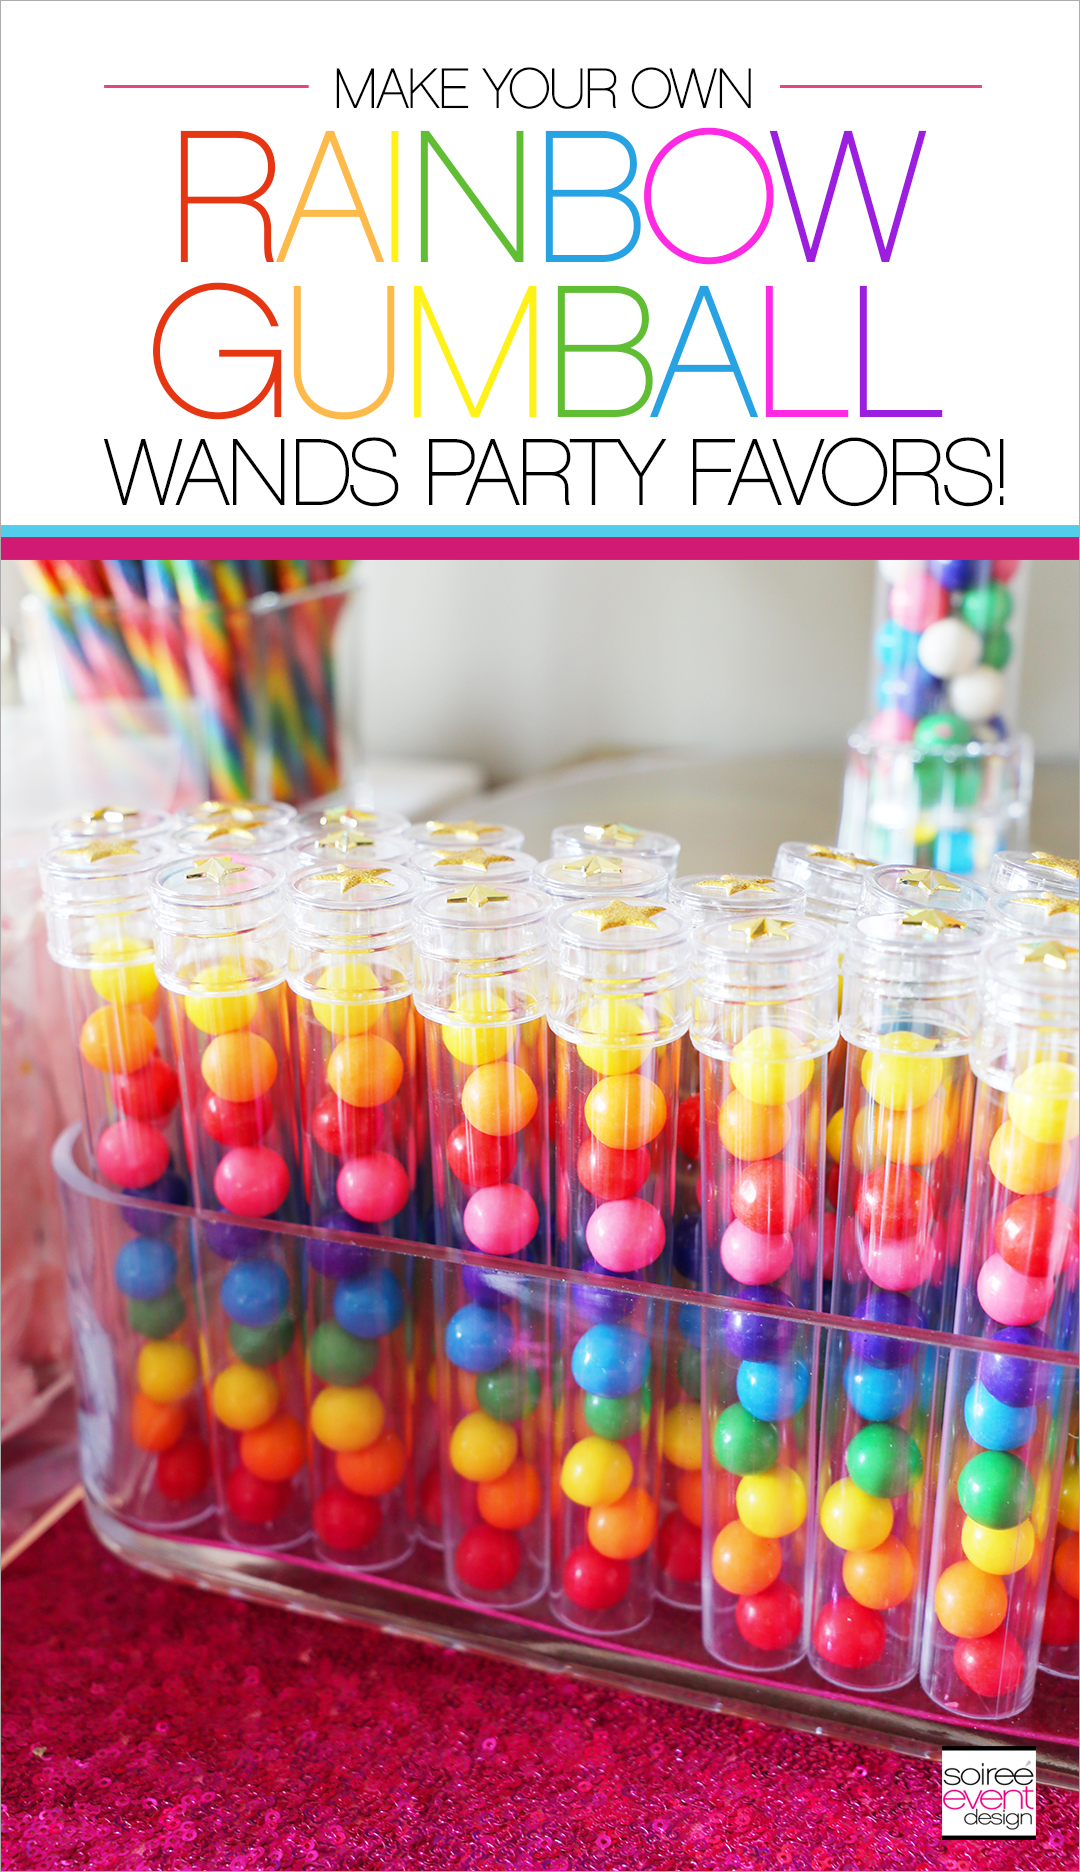 Rainbow Gumball Wands Party Favors